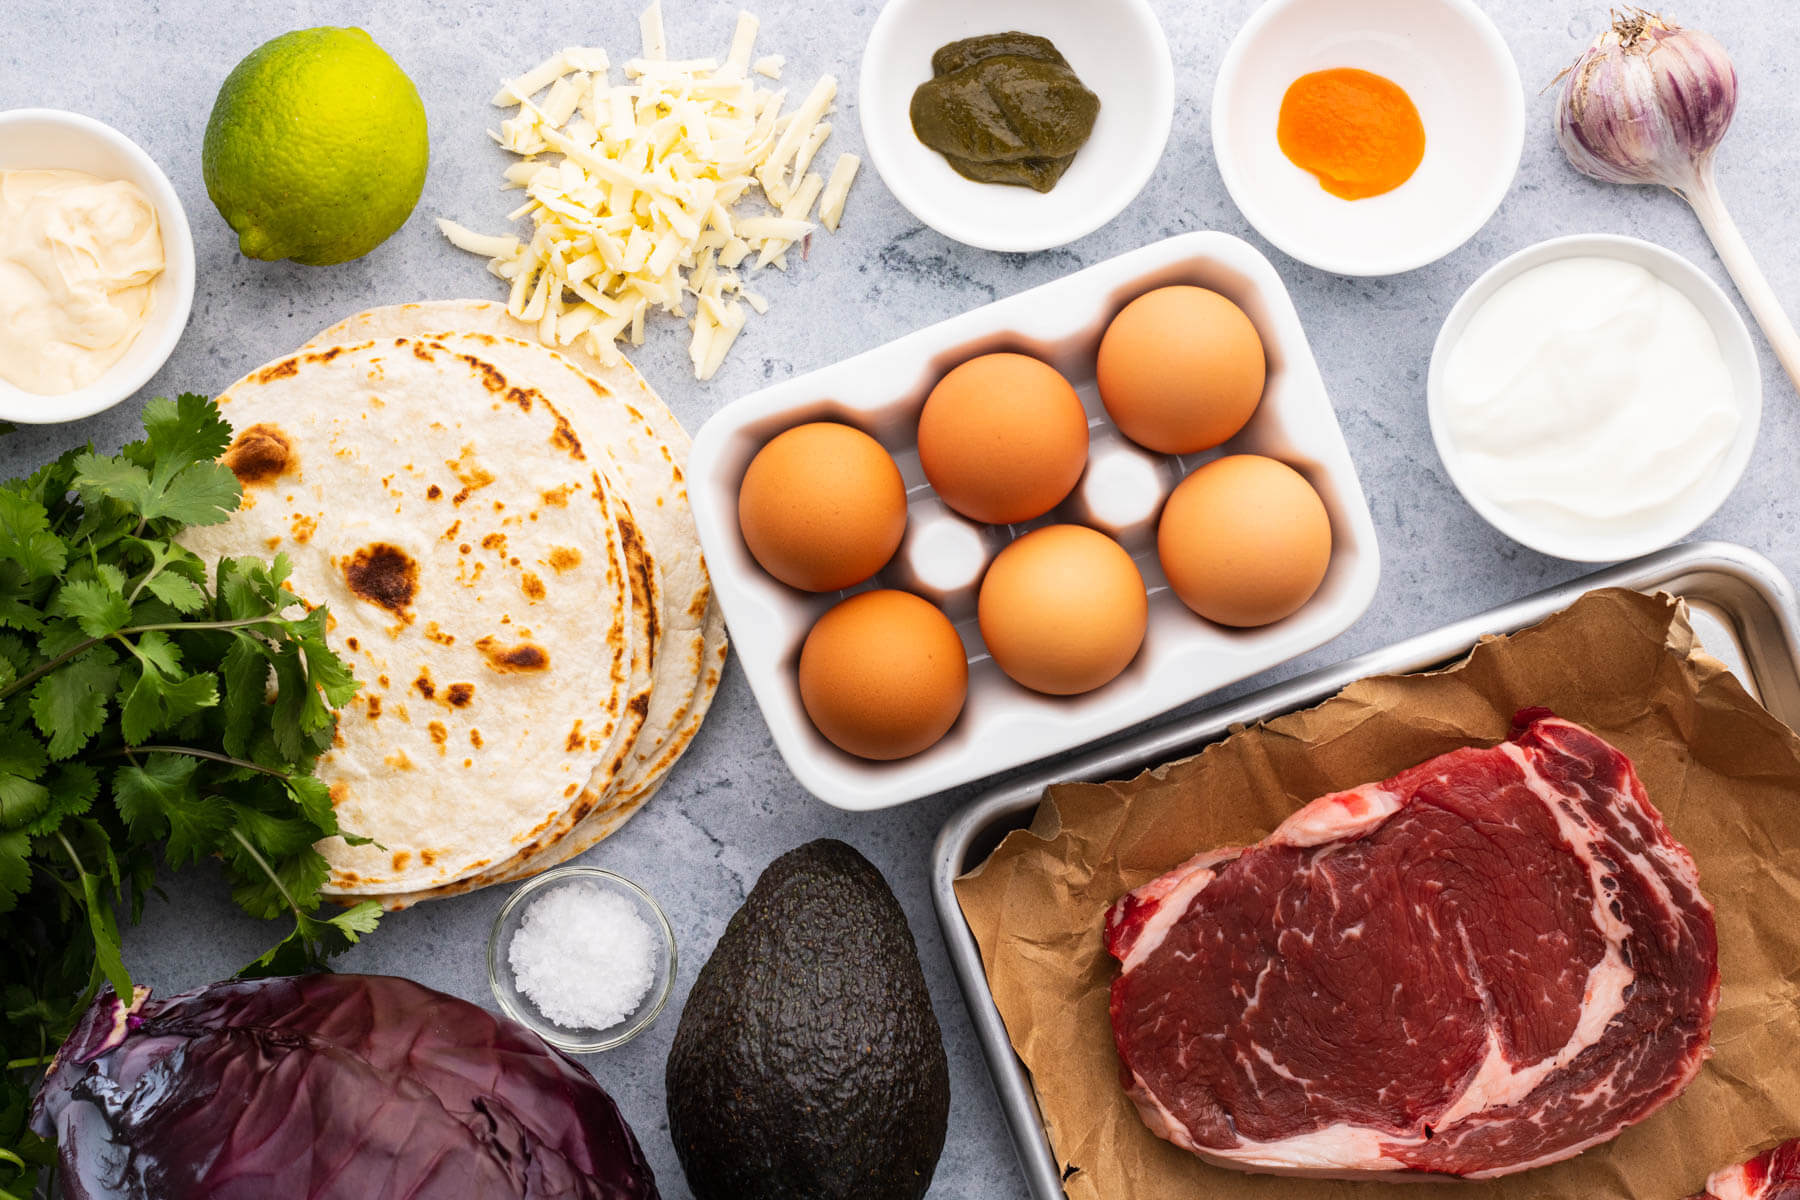 Ingredients photo featuring brown eggs, raw ribeye steak, avocado, cilantro, red cabbage, grated cheese, lime, and sauces.